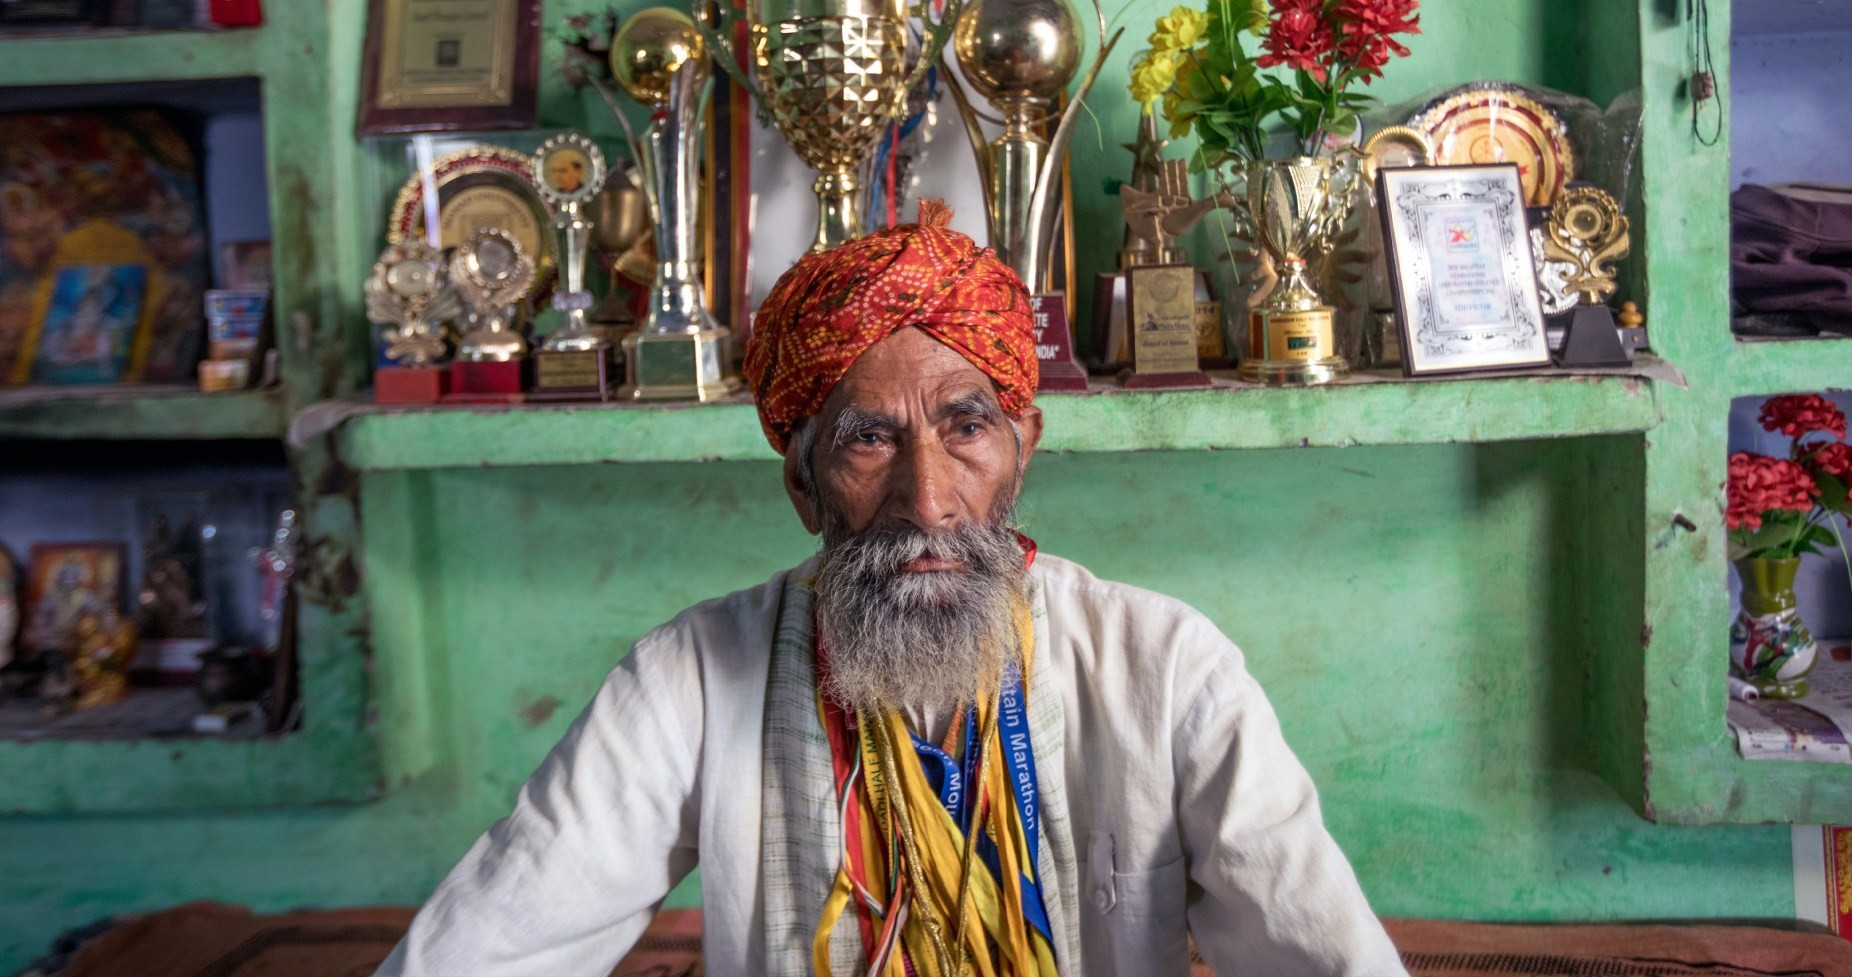 Indian's Dharam Singh claims to be 121-years-old and is still running races